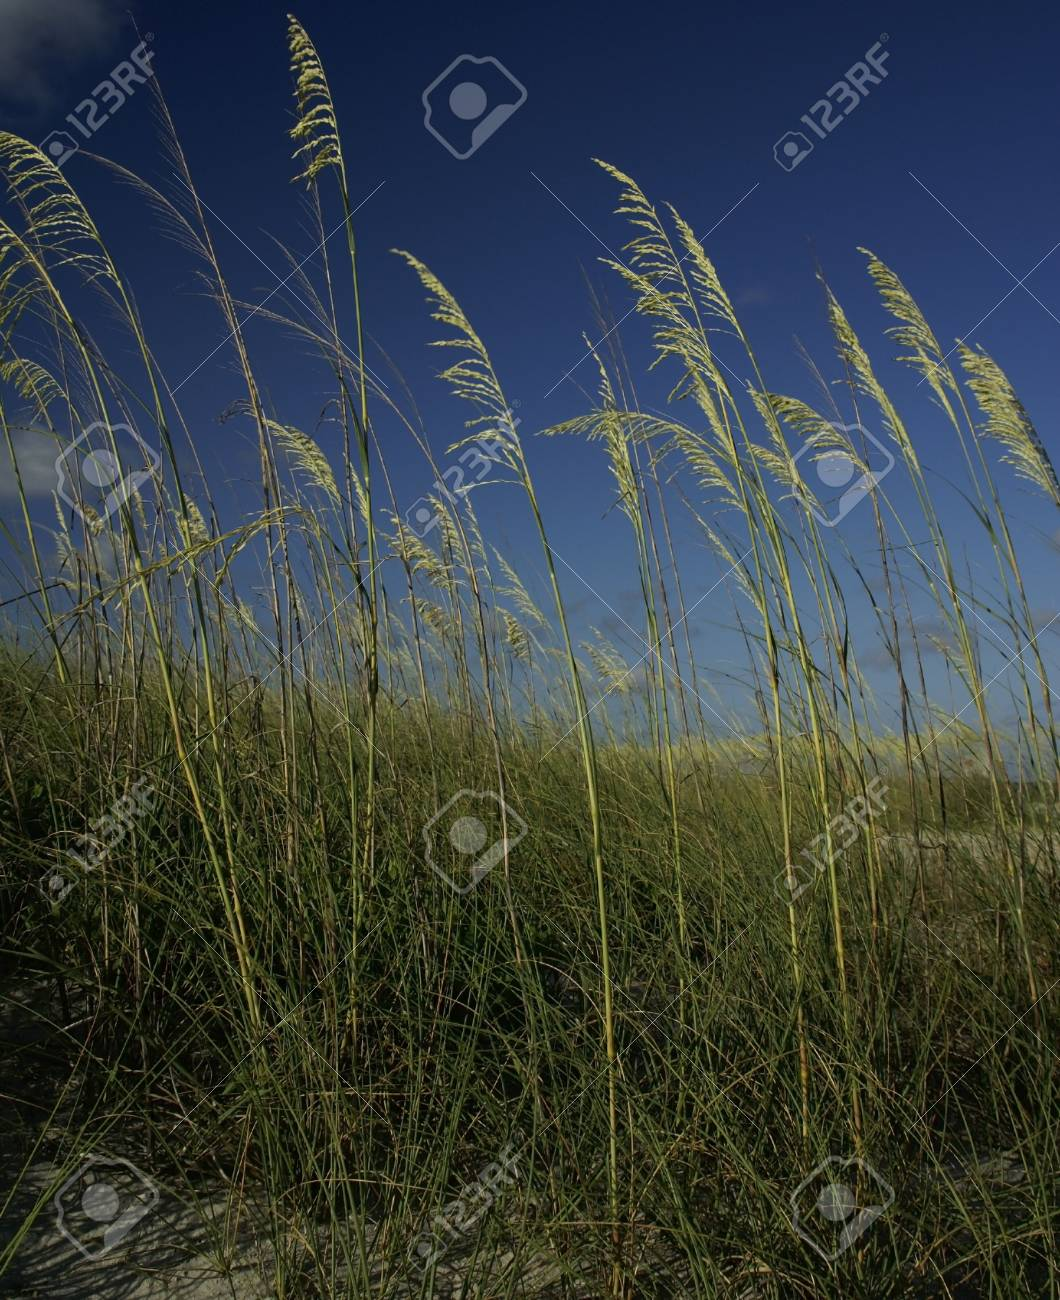 Green seagrass against a deep blue sky Stock Photo - 7717139